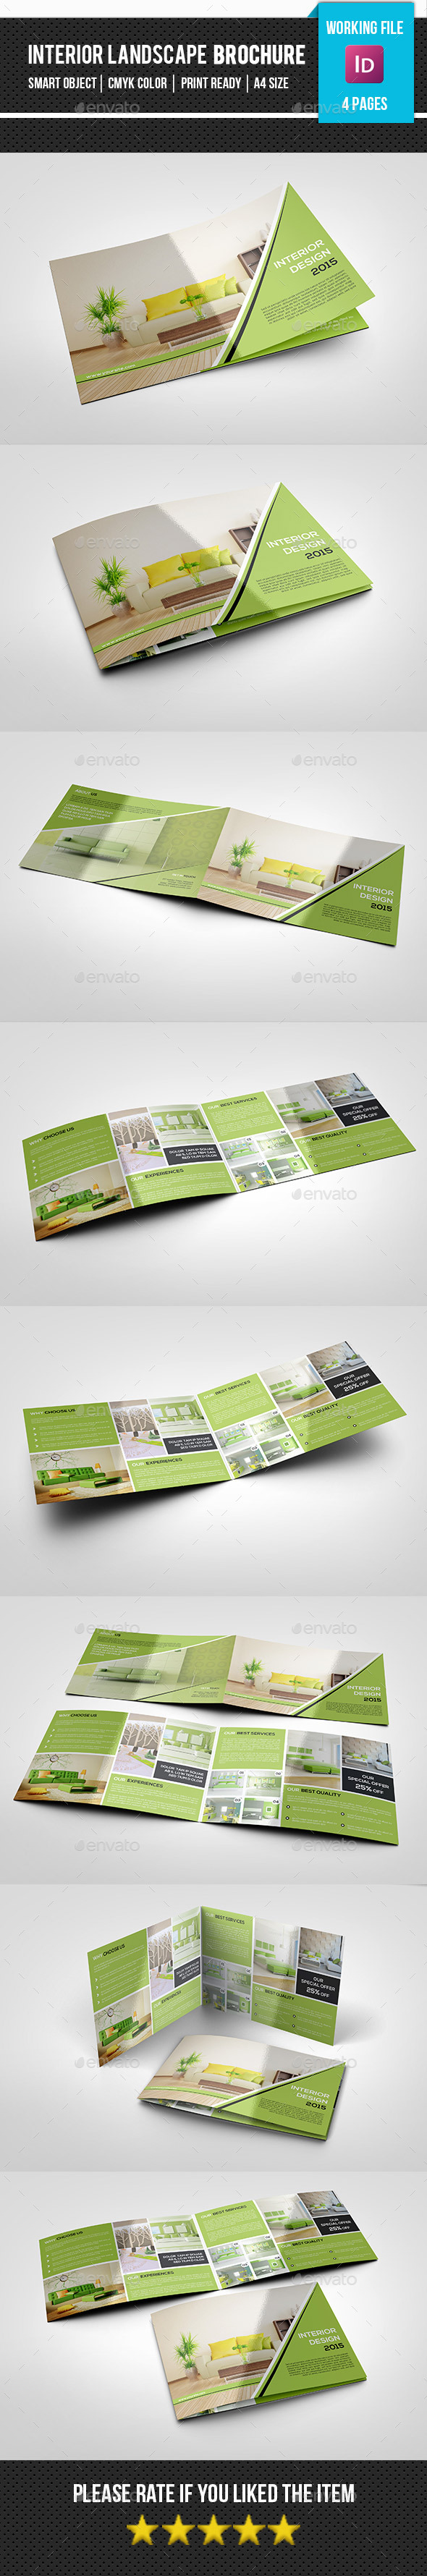 Bifold Interior Design Studio Brochure-V269 - Corporate Brochures